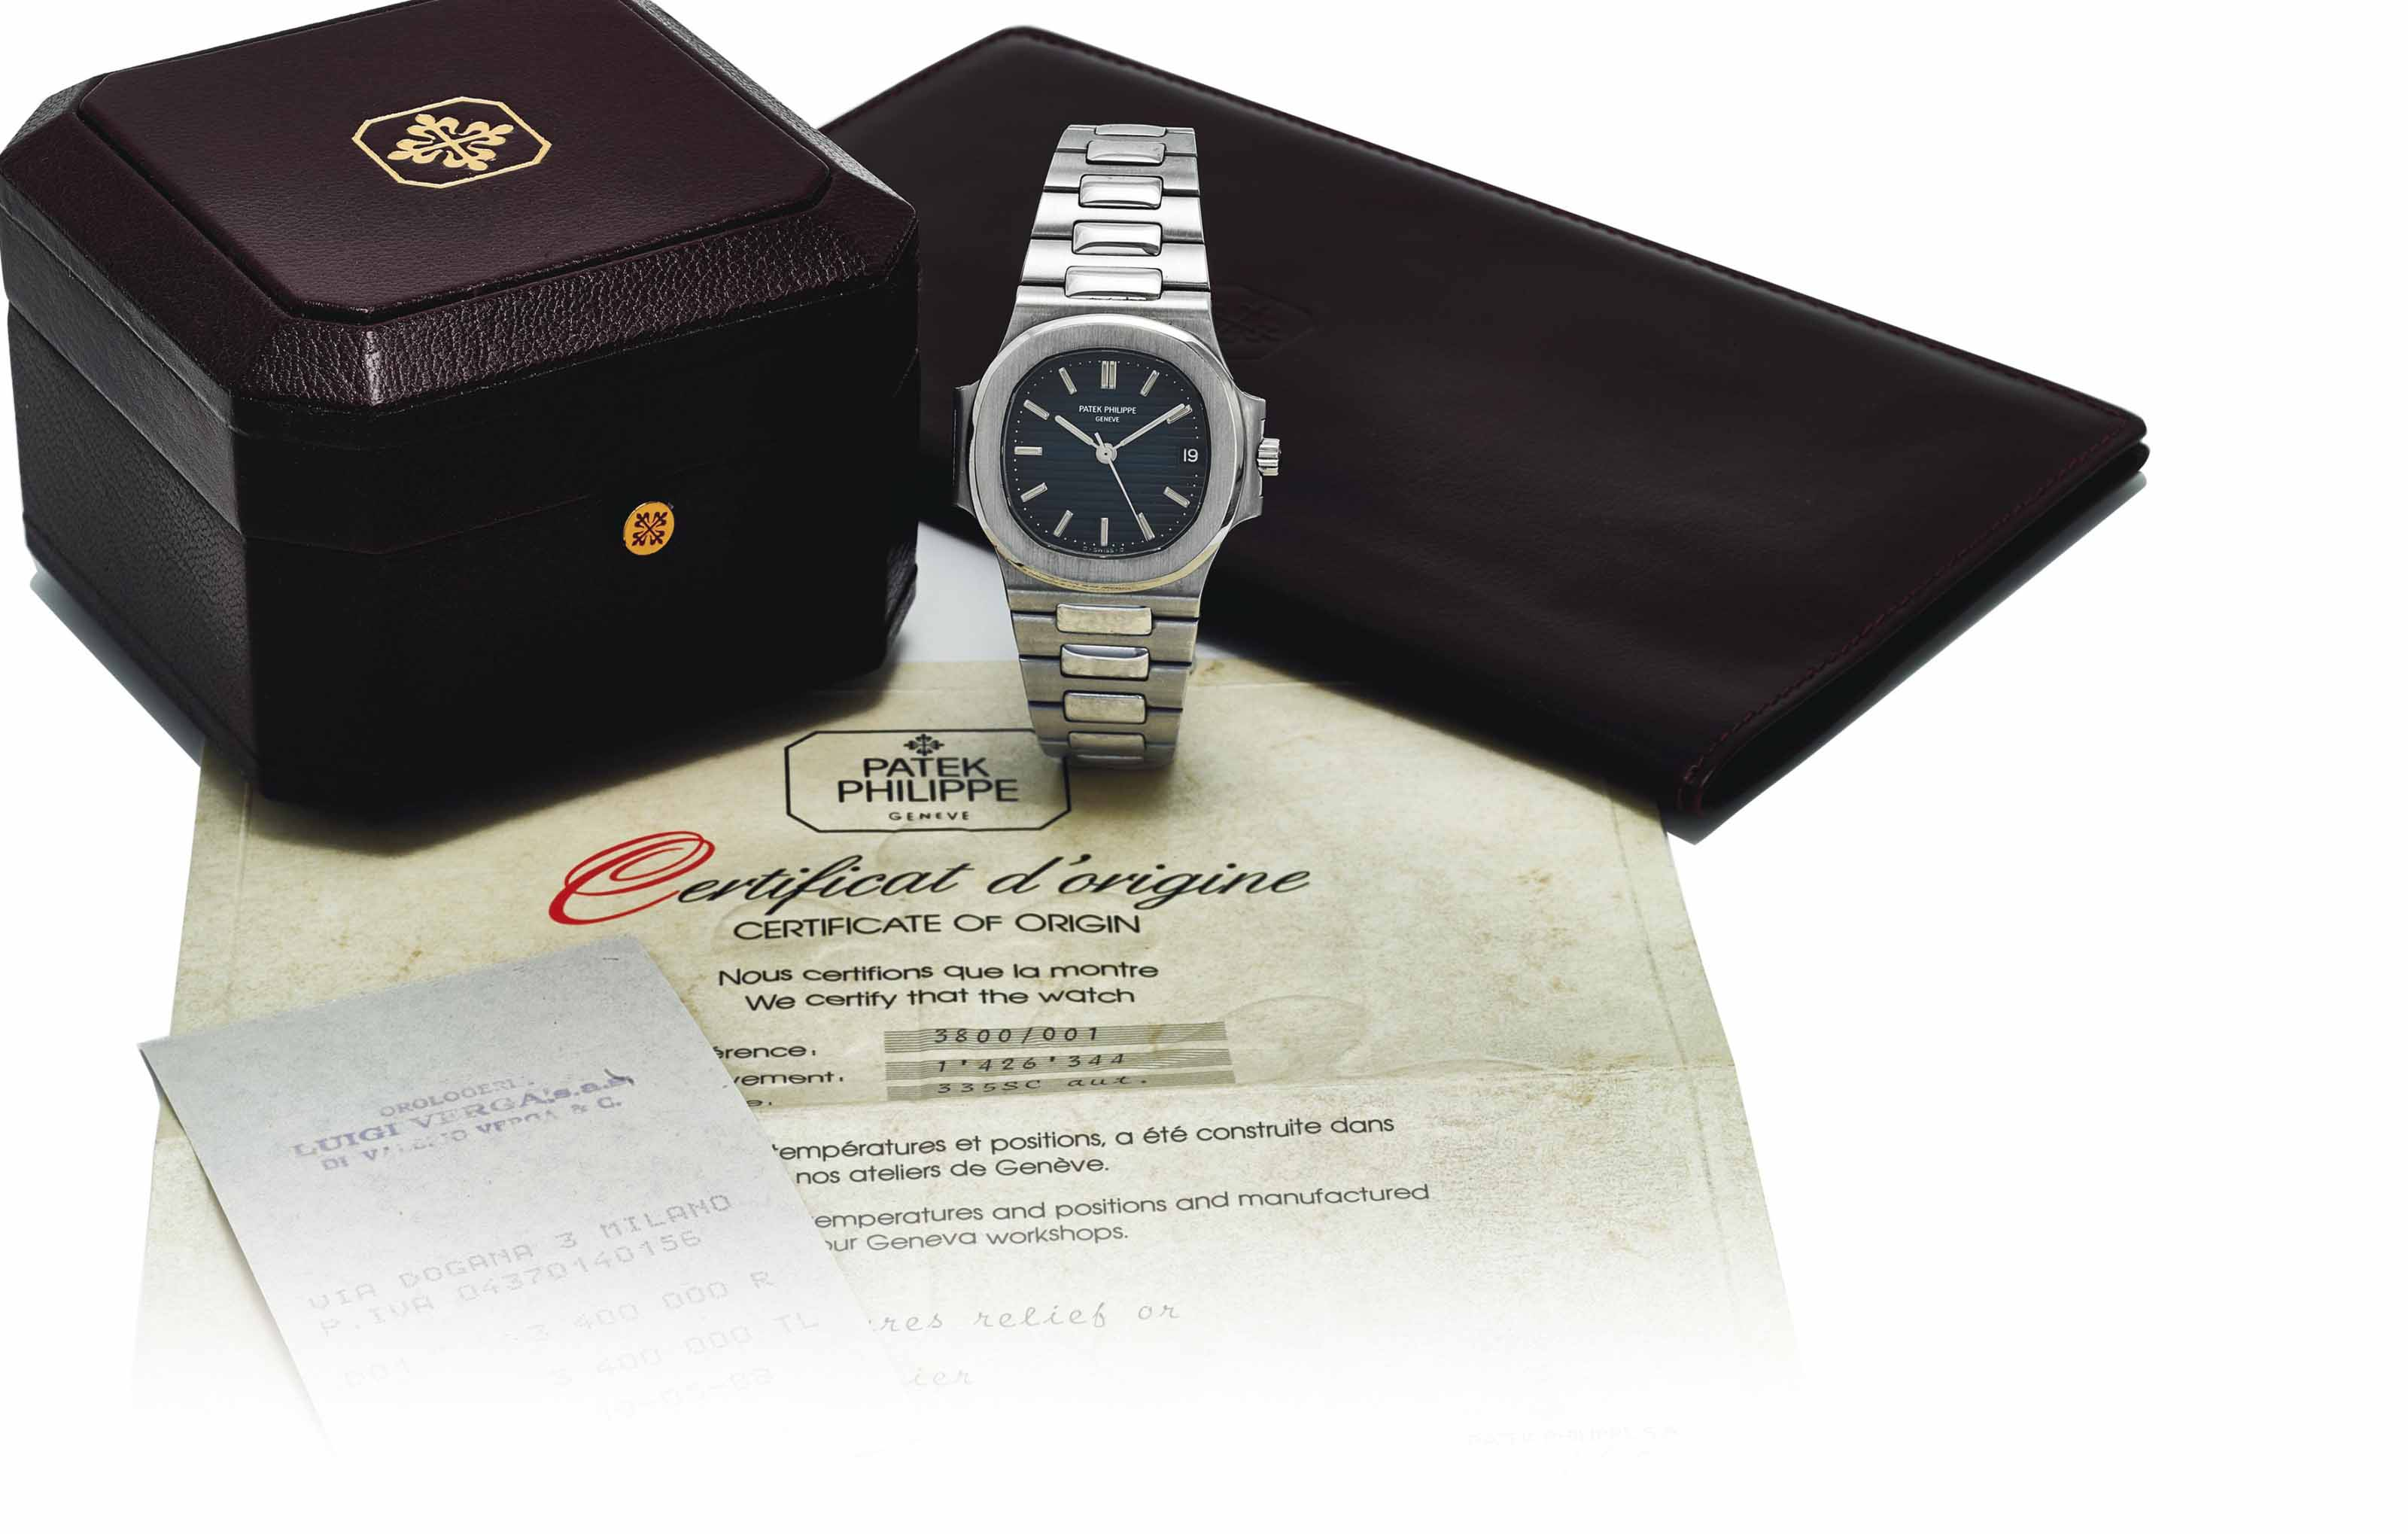 PATEK PHILIPPE. AN ATTRACTIVE STAINLESS STEEL AUTOMATIC WRISTWATCH WITH SWEEP CENTRE SECONDS, DATE, BRACELET, ORIGINAL CERTIFICATE AND BOX